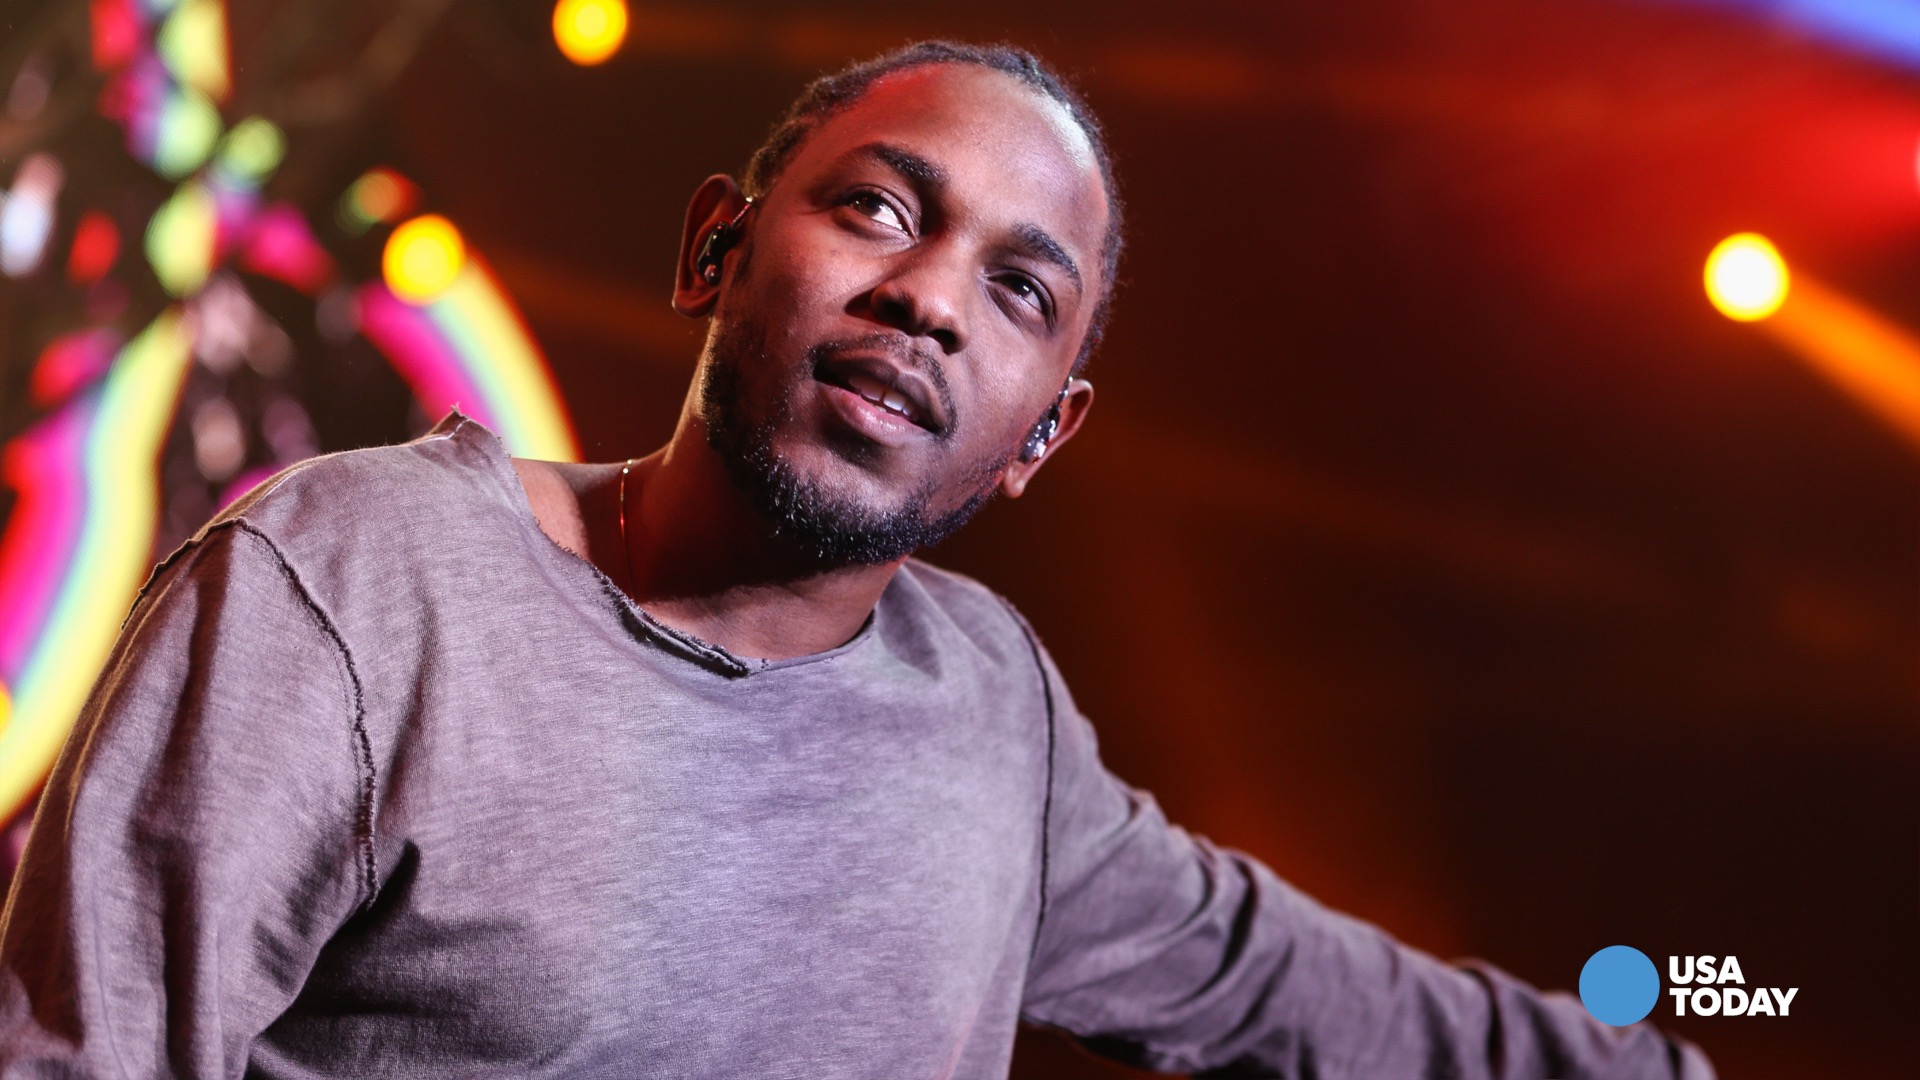 Kendrick Lamar and Taylo Swift are among the five battling it out for song of the year.